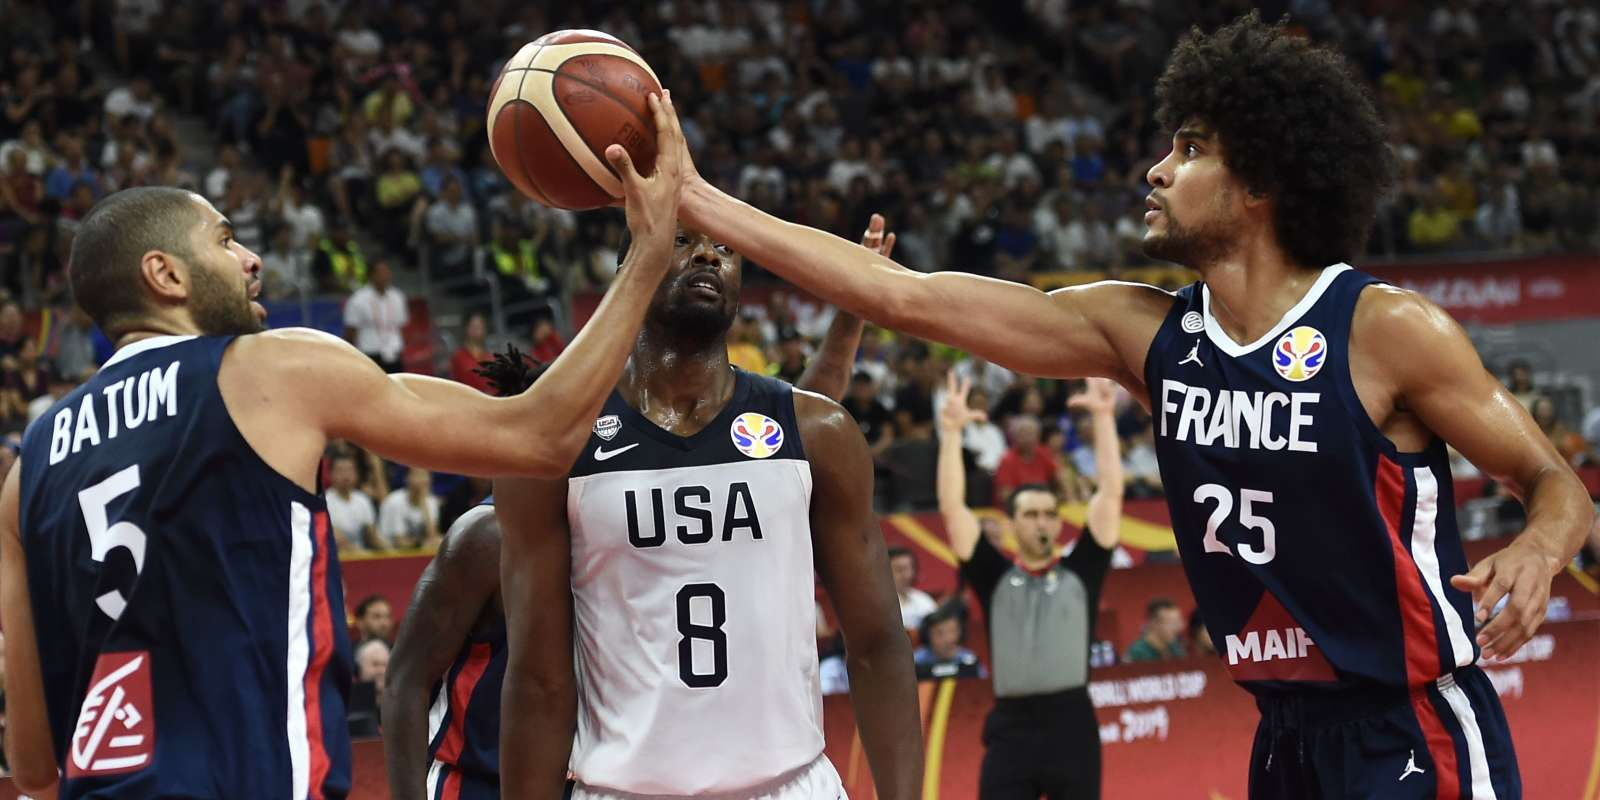 France's Nicolas Batum (L) and Louis Labeyrie handle the ball as Harrison Barnes (C) of the US watches during the Basketball World Cup quarter-final game between US and France in Dongguan on September 11, 2019. / AFP / Ye Aung Thu